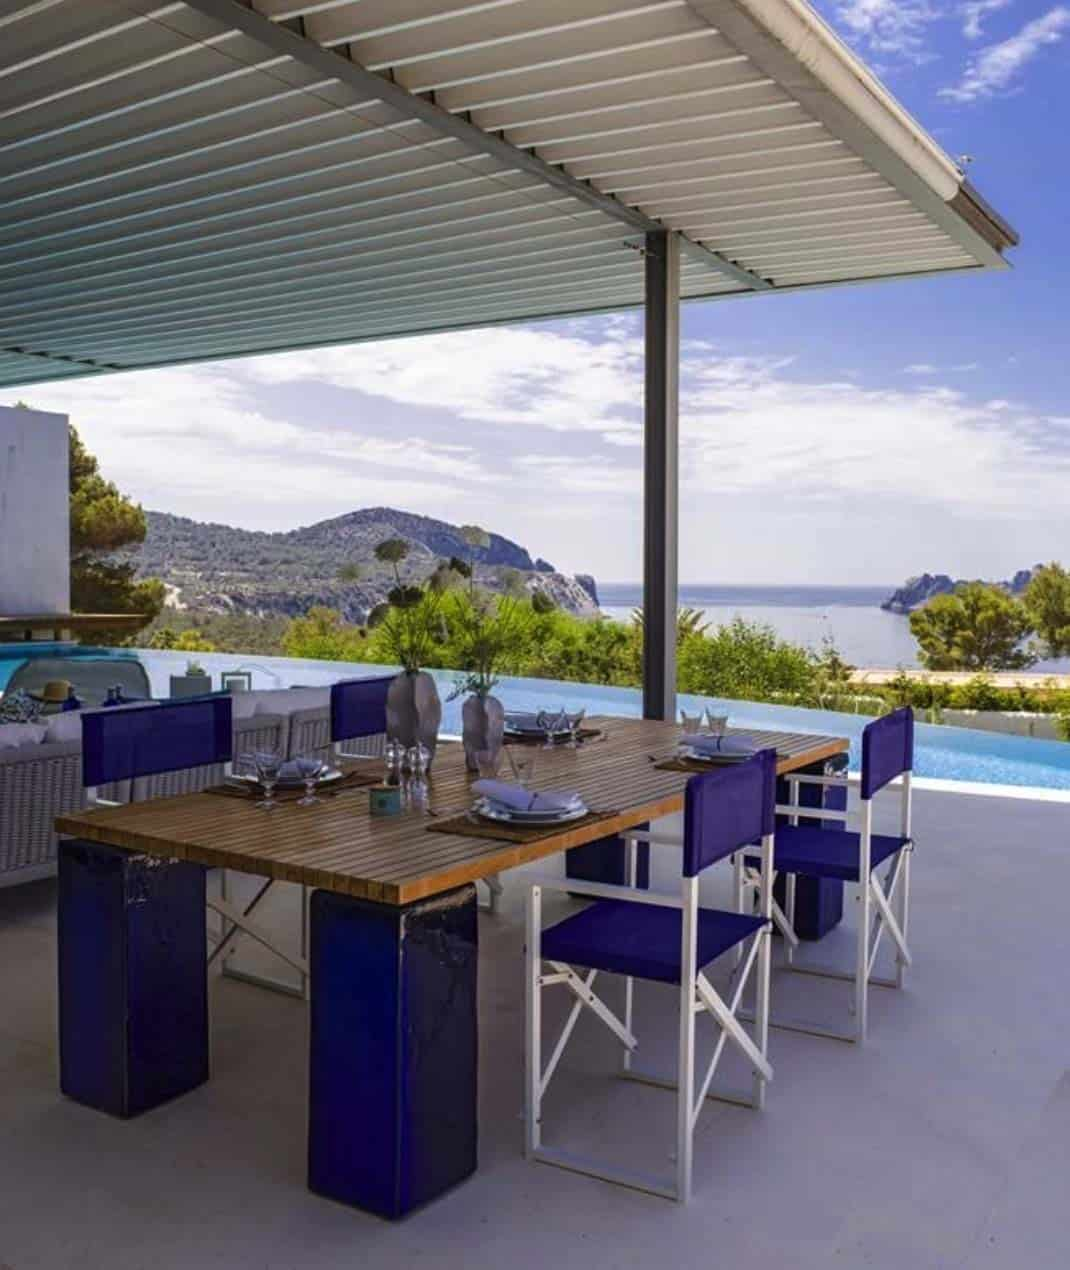 House in Ibiza-Melian Randolph-05-1 Kindesign